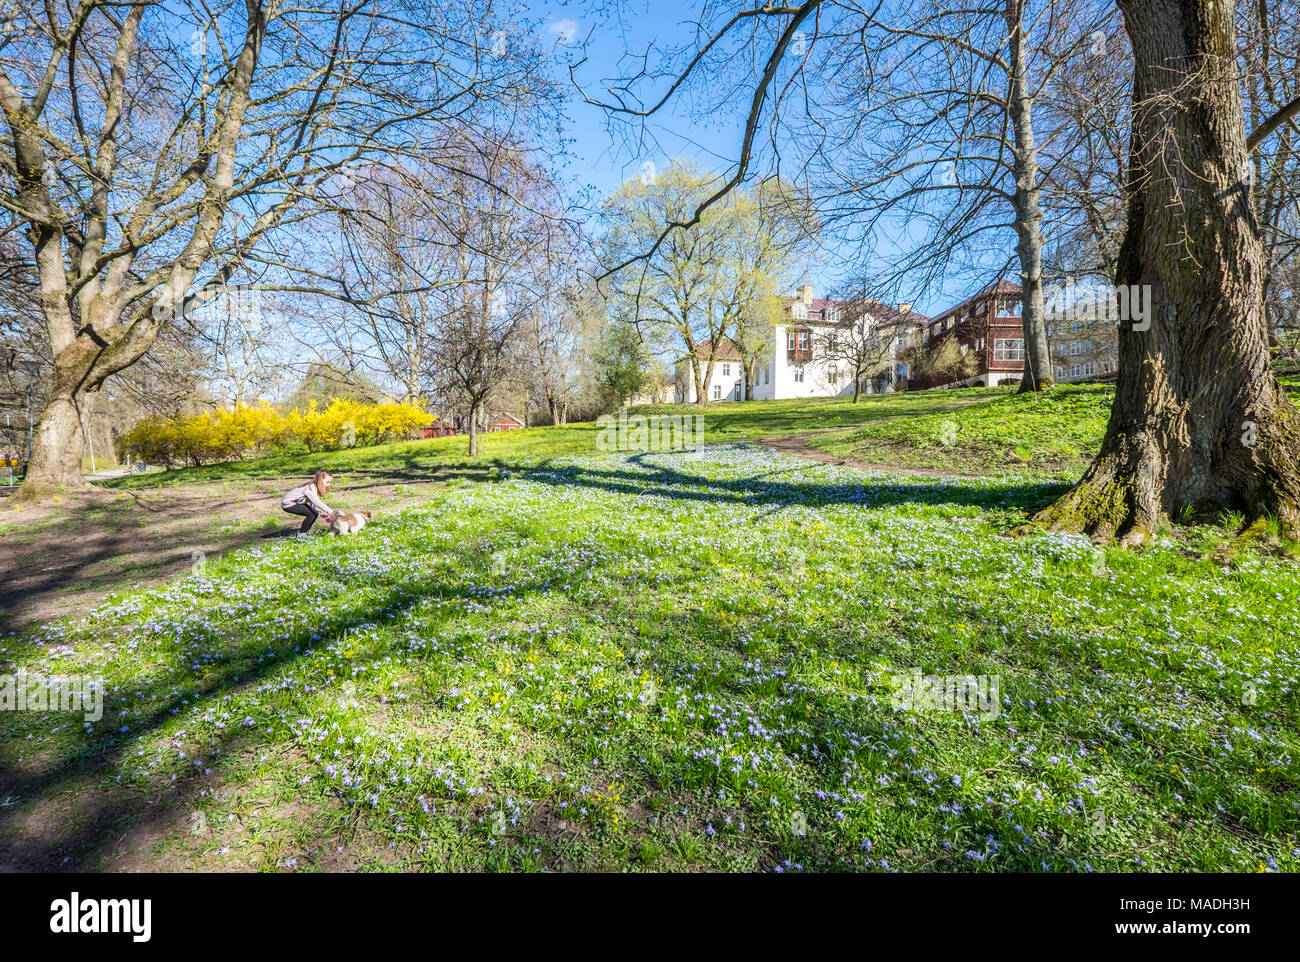 People enjoy a walk and spring atmosphere in the city park along Motala river in Norrkoping, Sweden. - Stock Image